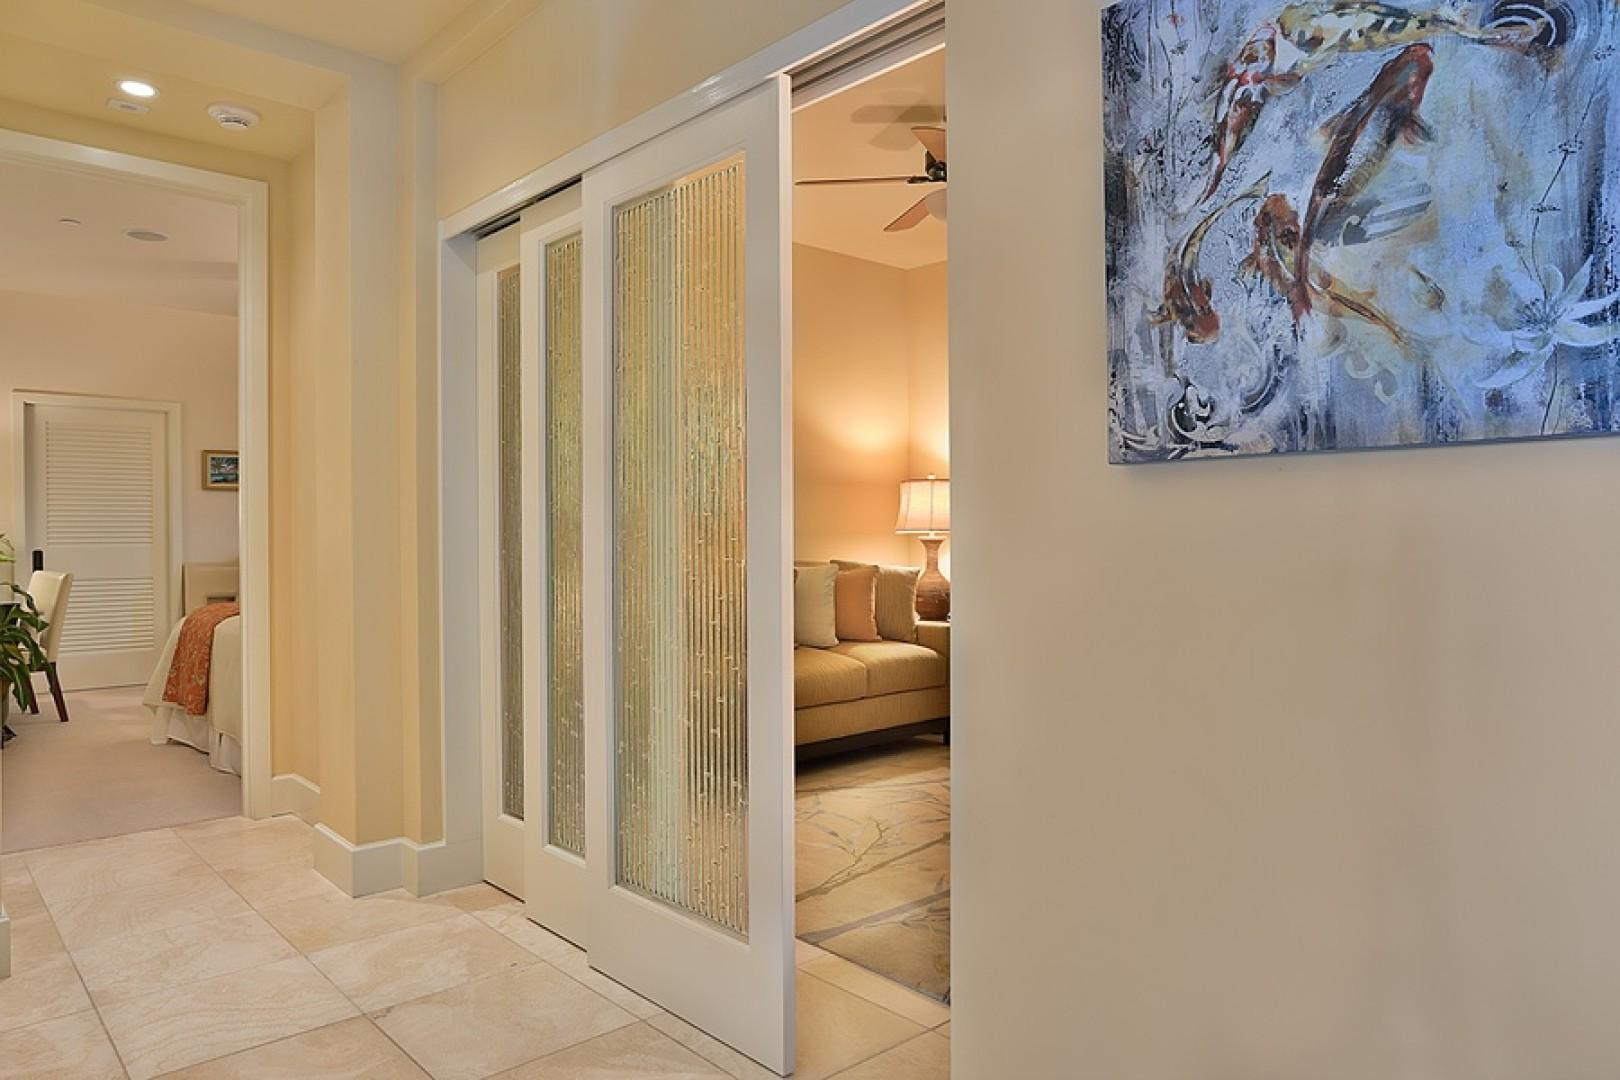 Sandy Surf K508 - Solid doors enclose the den which makes a 4th sleeping space